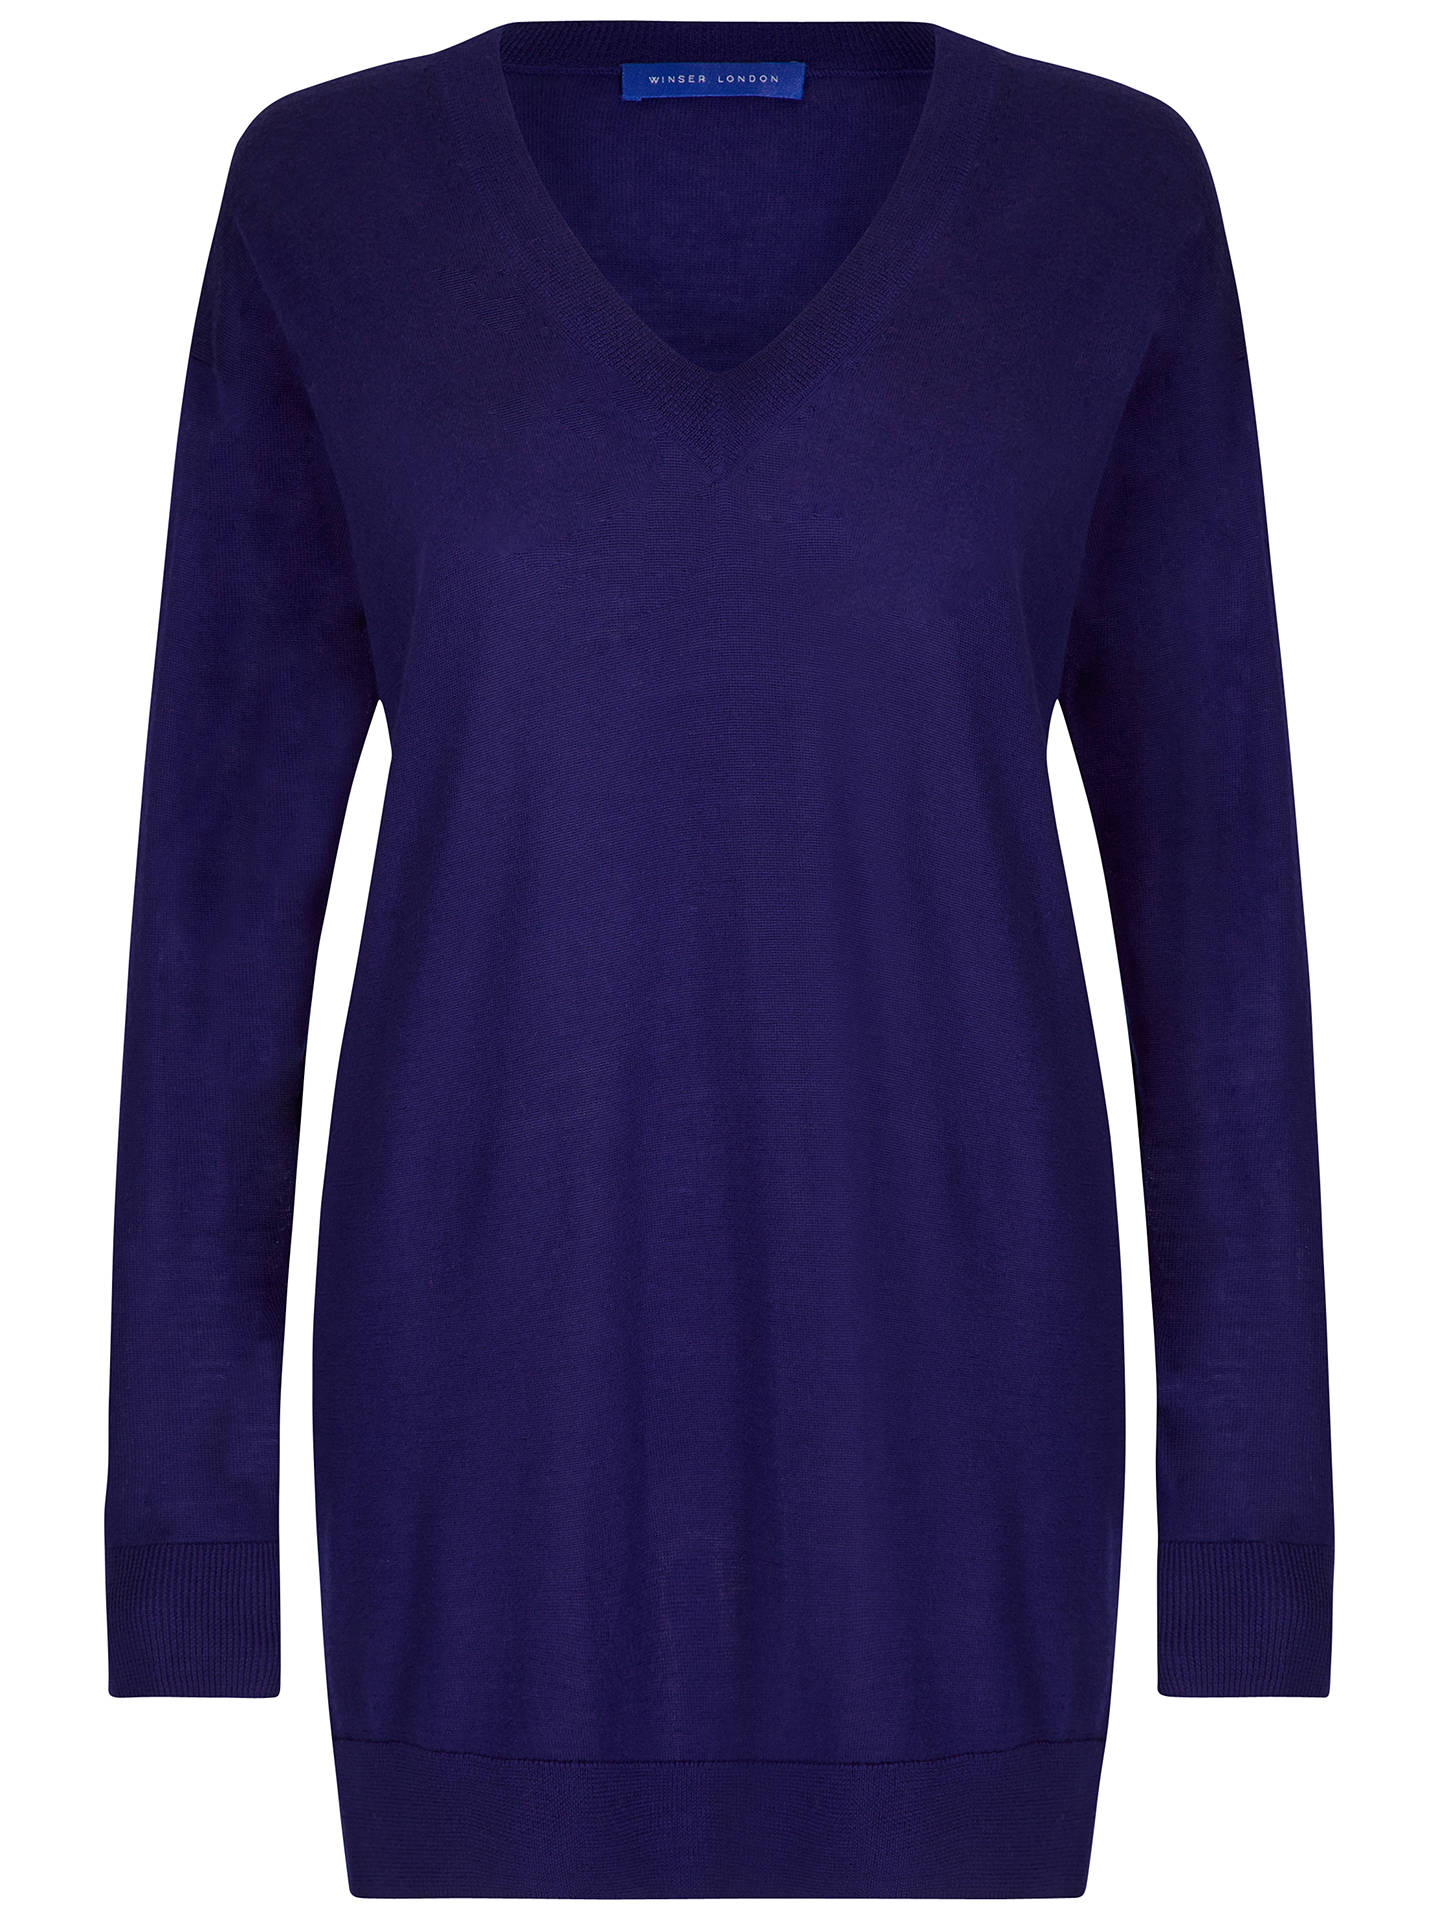 BuyWinser London Boyfriend Jumper, Moonlight, XS Online at johnlewis.com